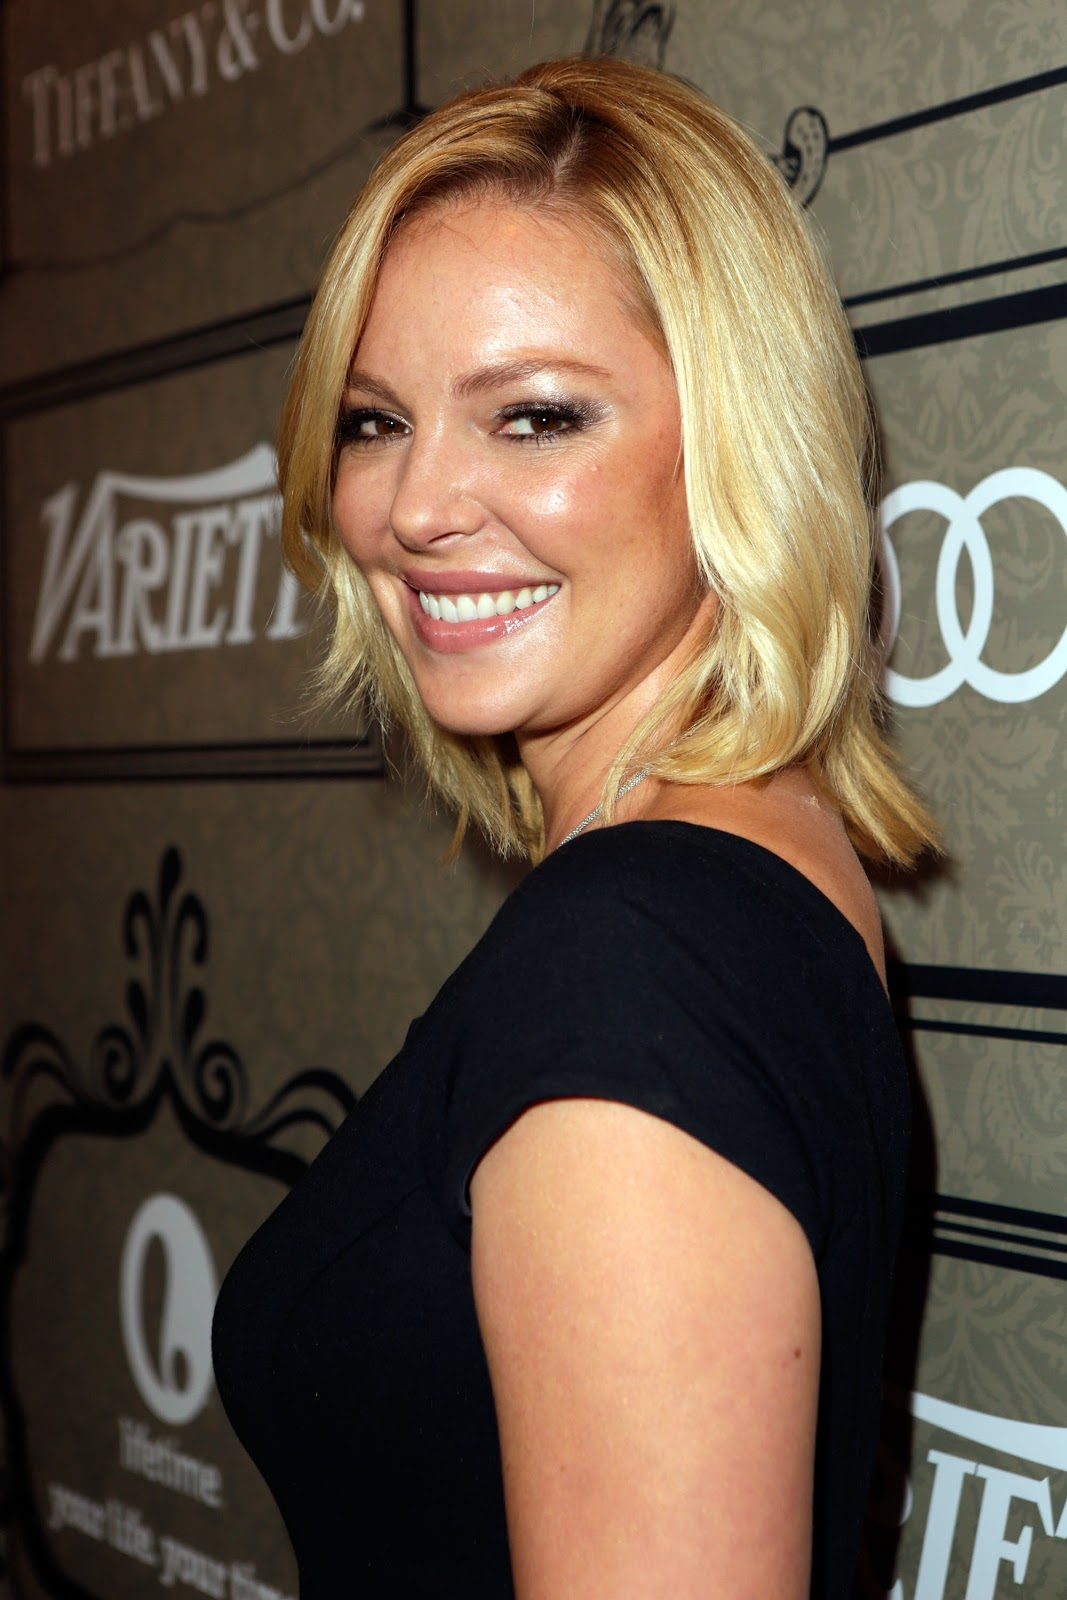 http://2.bp.blogspot.com/-vcT-BfJTANs/UIPY5WJwyiI/AAAAAAAAi_M/7qdZl3L94hs/s1600/Katherine+Heigl+-+Variety%2527s+4th+Annual+Power+of+Women+Event+in+Beverly+Hills+-+October+10%252C+2012+1.jpg